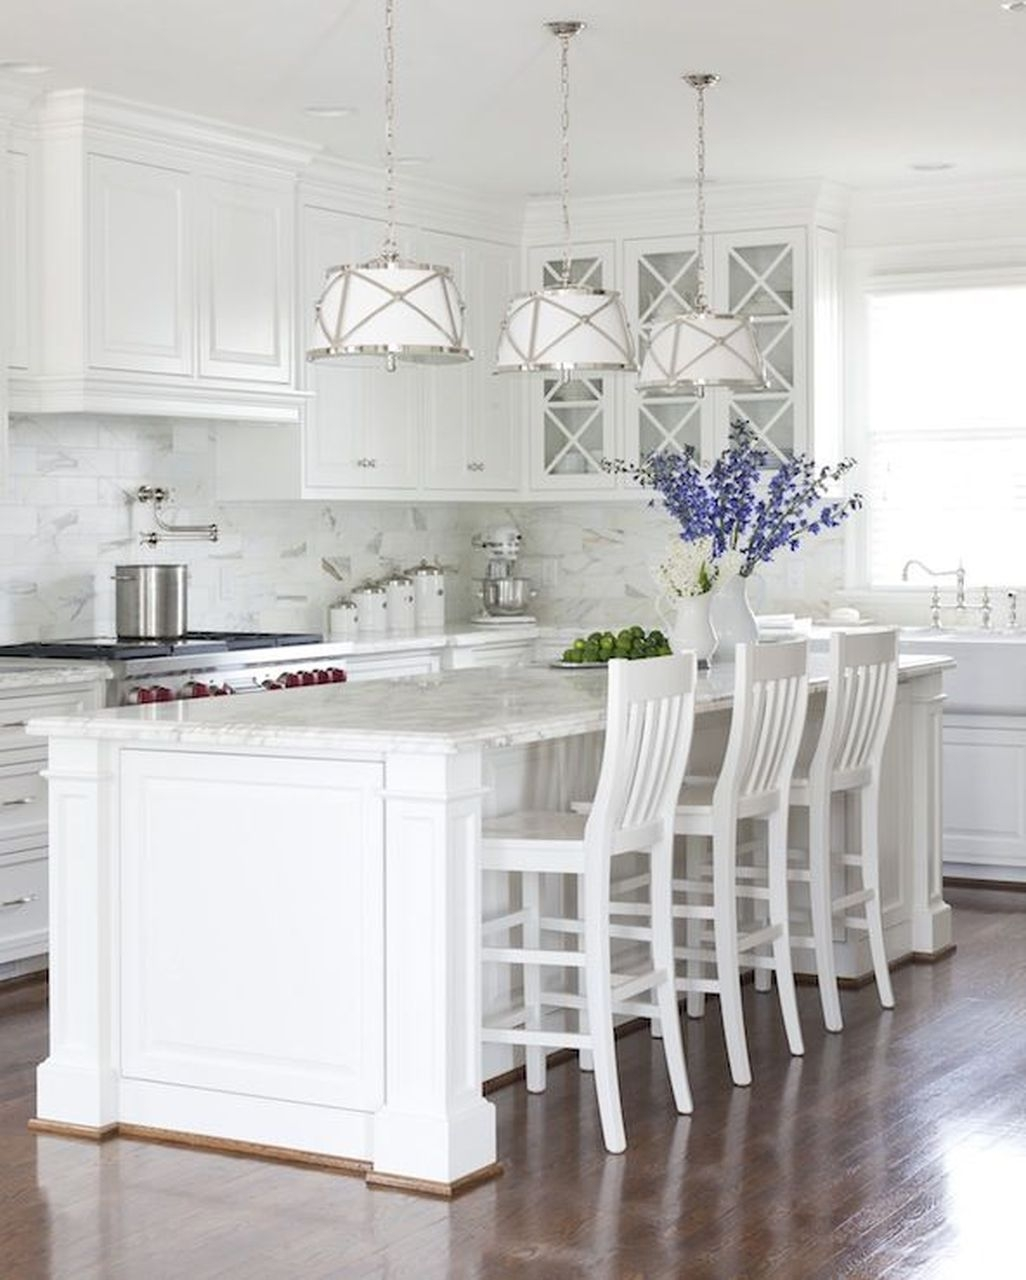 Awesome White Kitchen Backsplash Design Ideas 27